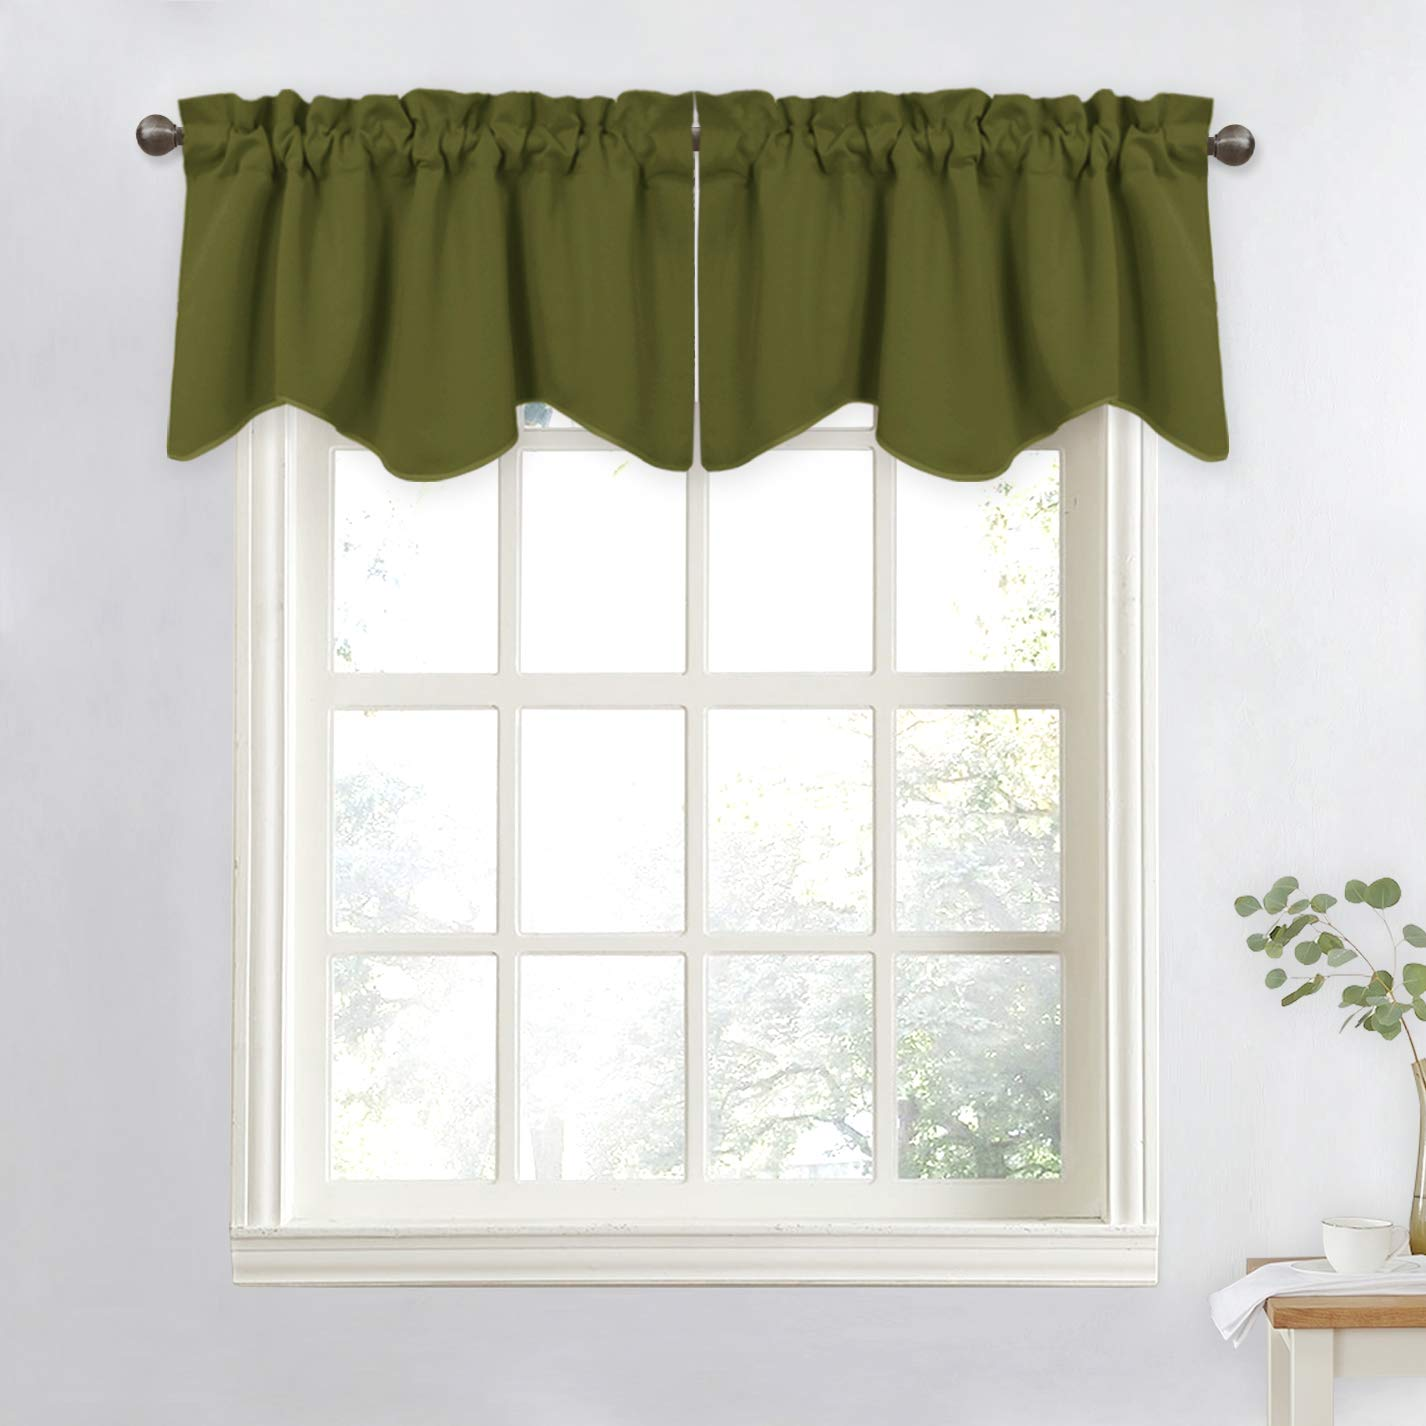 NICETOWN Blackout Curtain for Boys Room - 52 inches by 18 inches Solid Scalloped Valance for Bedroom/Kitchen/Living Room/Bathroom/Bay Window (Olive Green, 1 Panel)